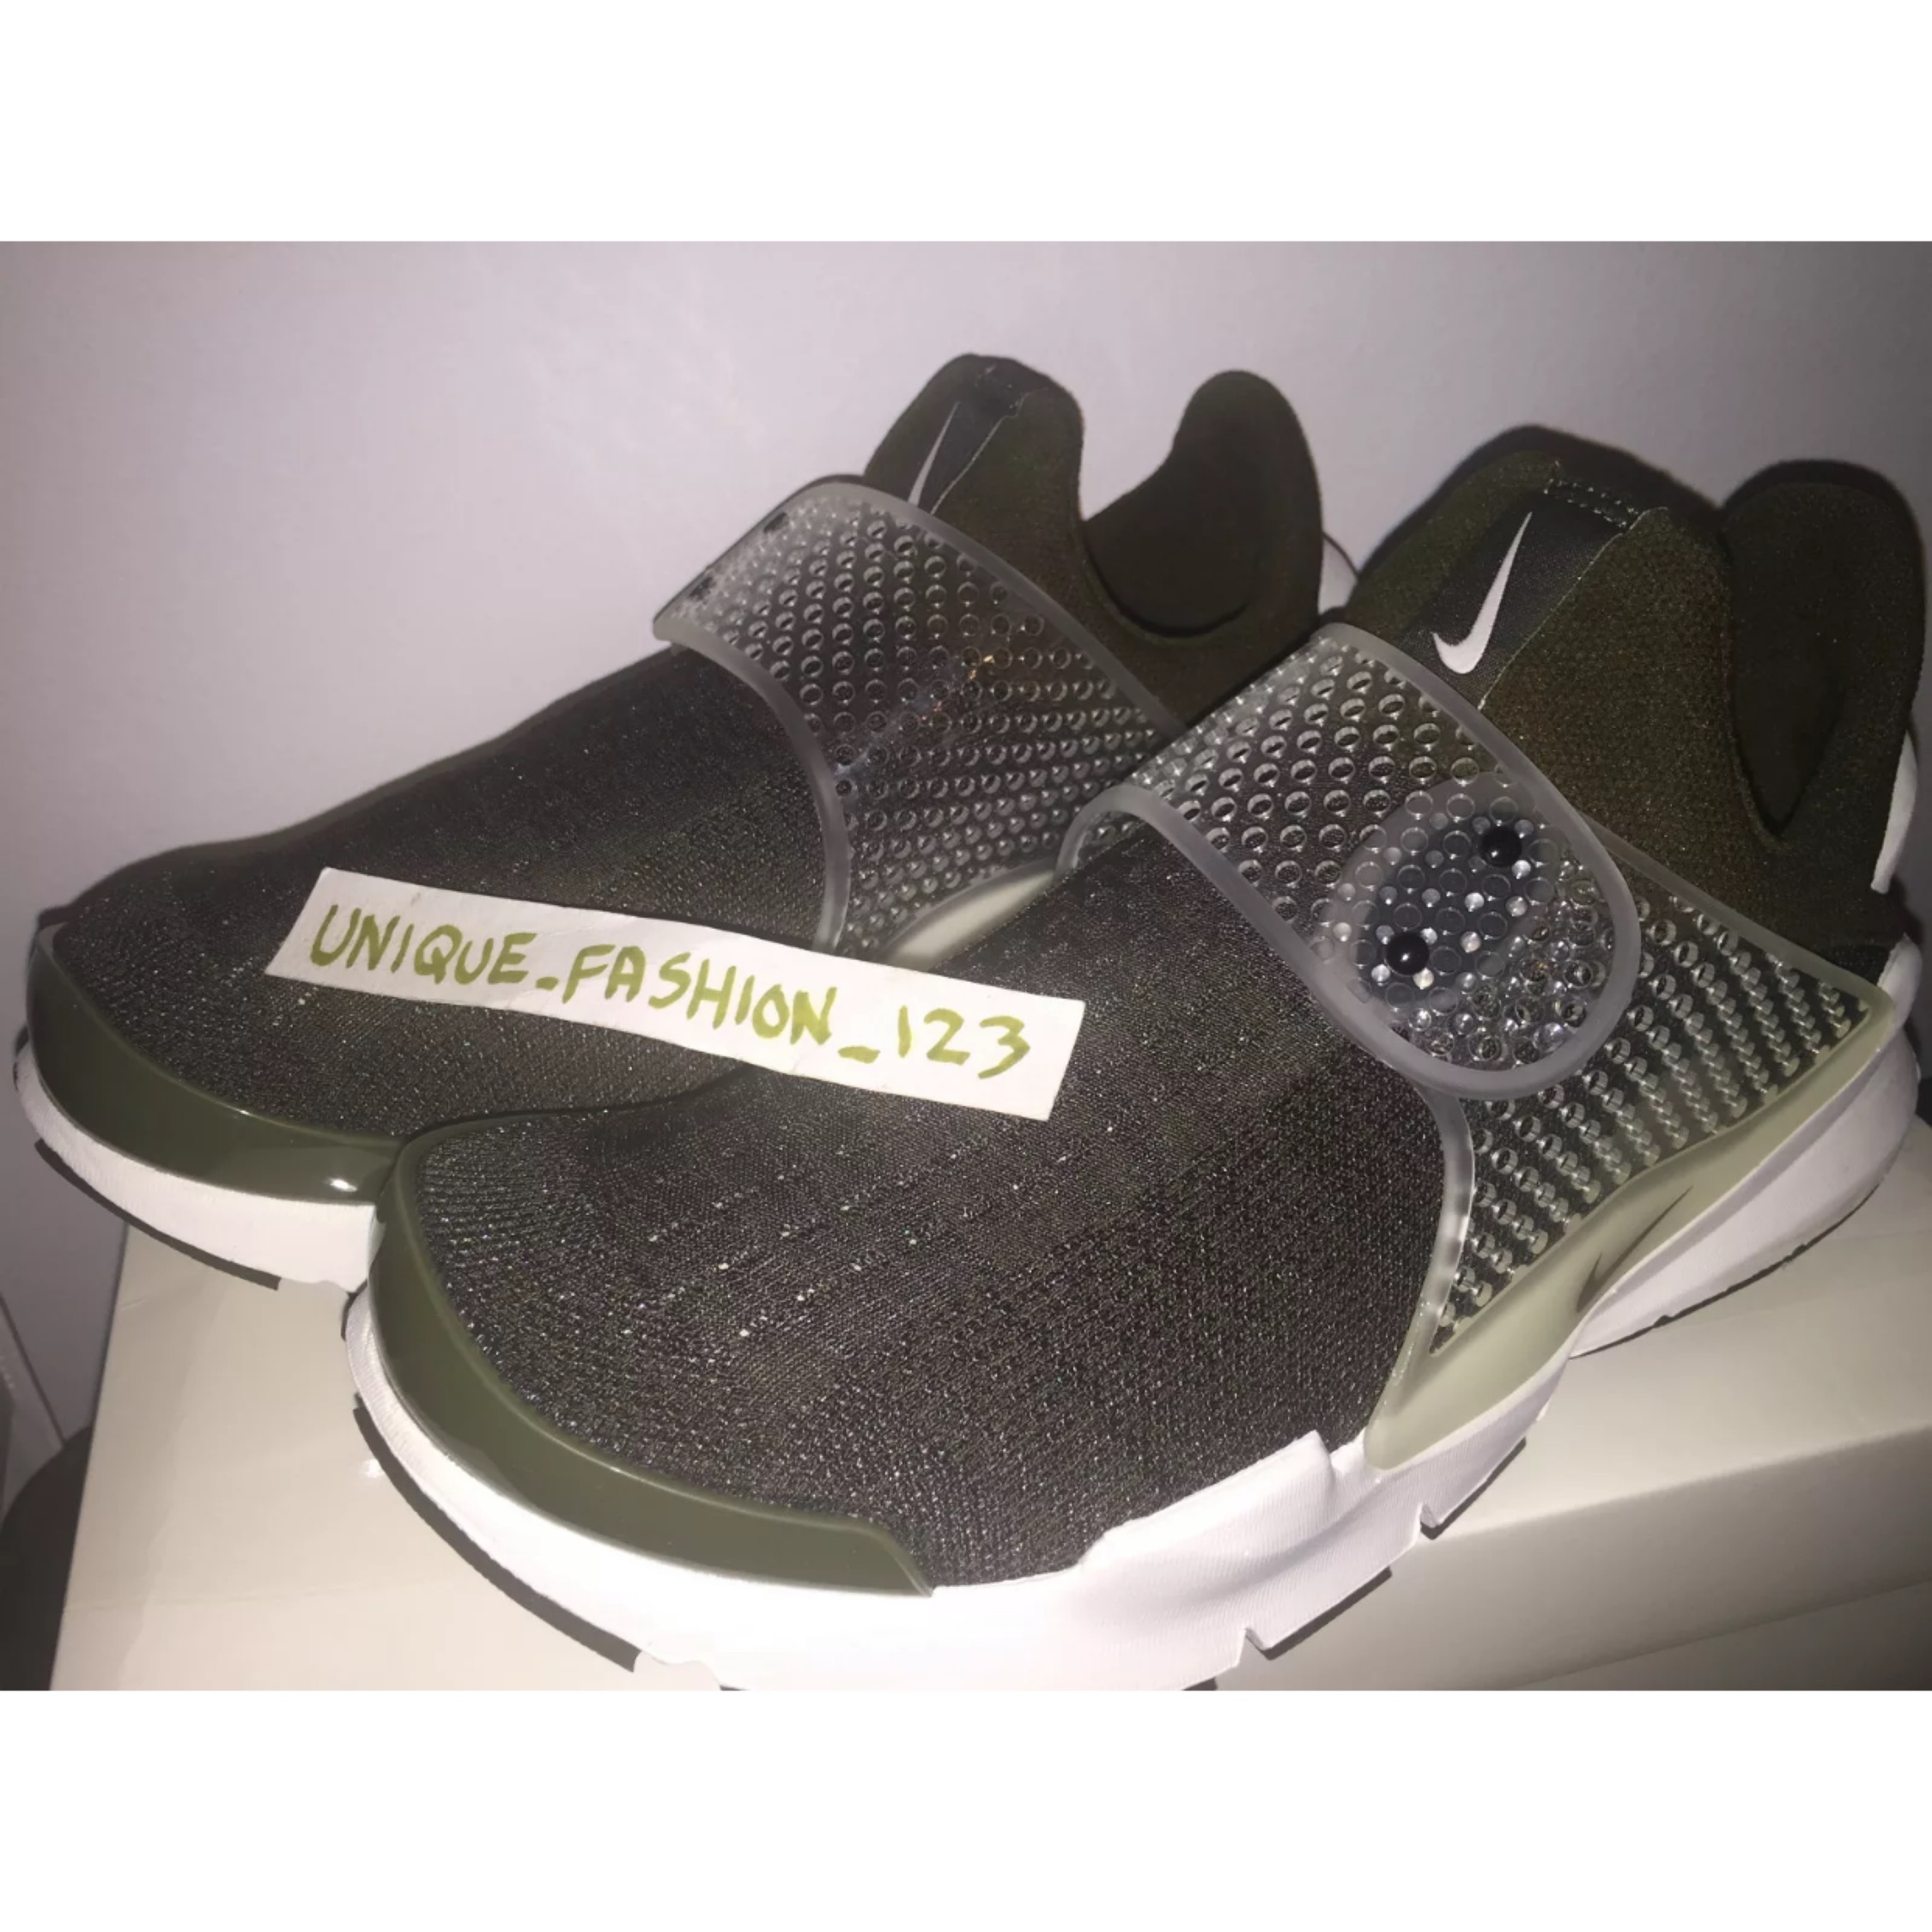 Nike Sock Dart Sp Fragment Olive